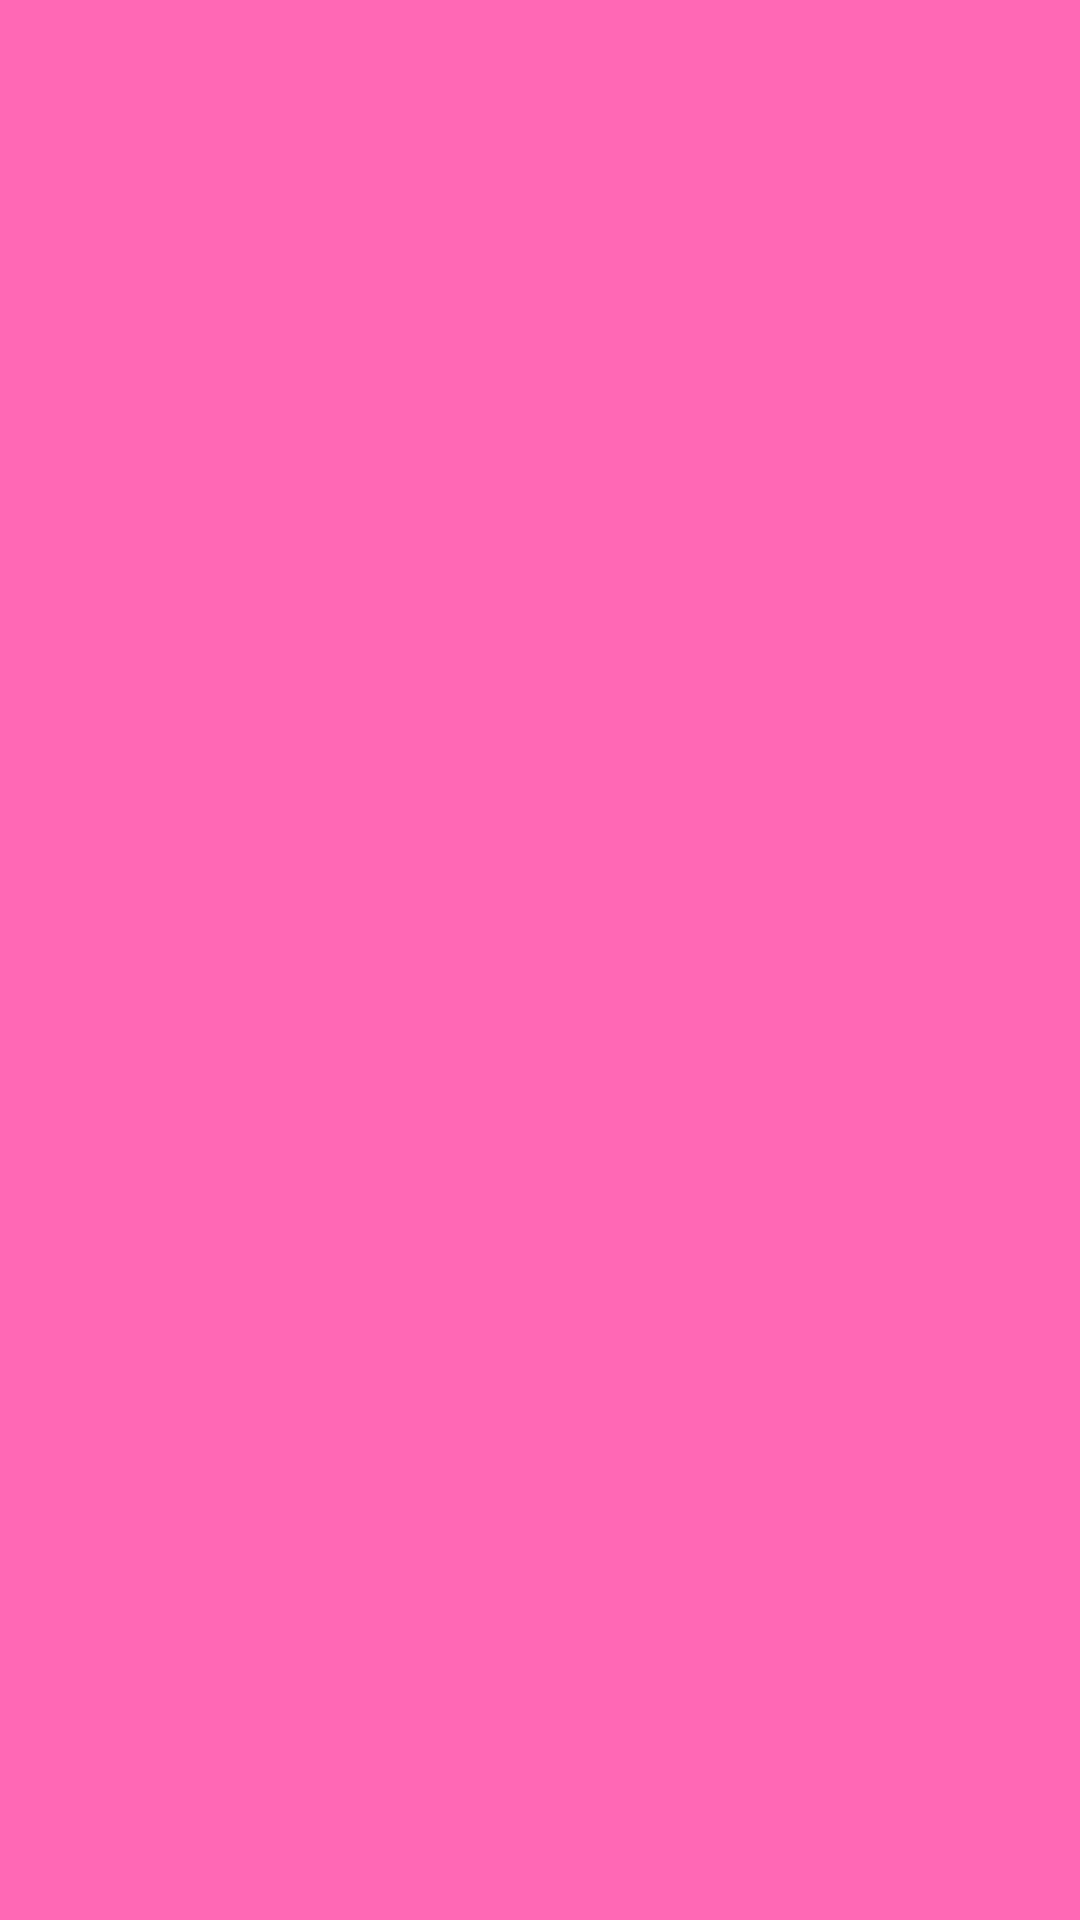 Solid Pink iPhone 5 wallpaper